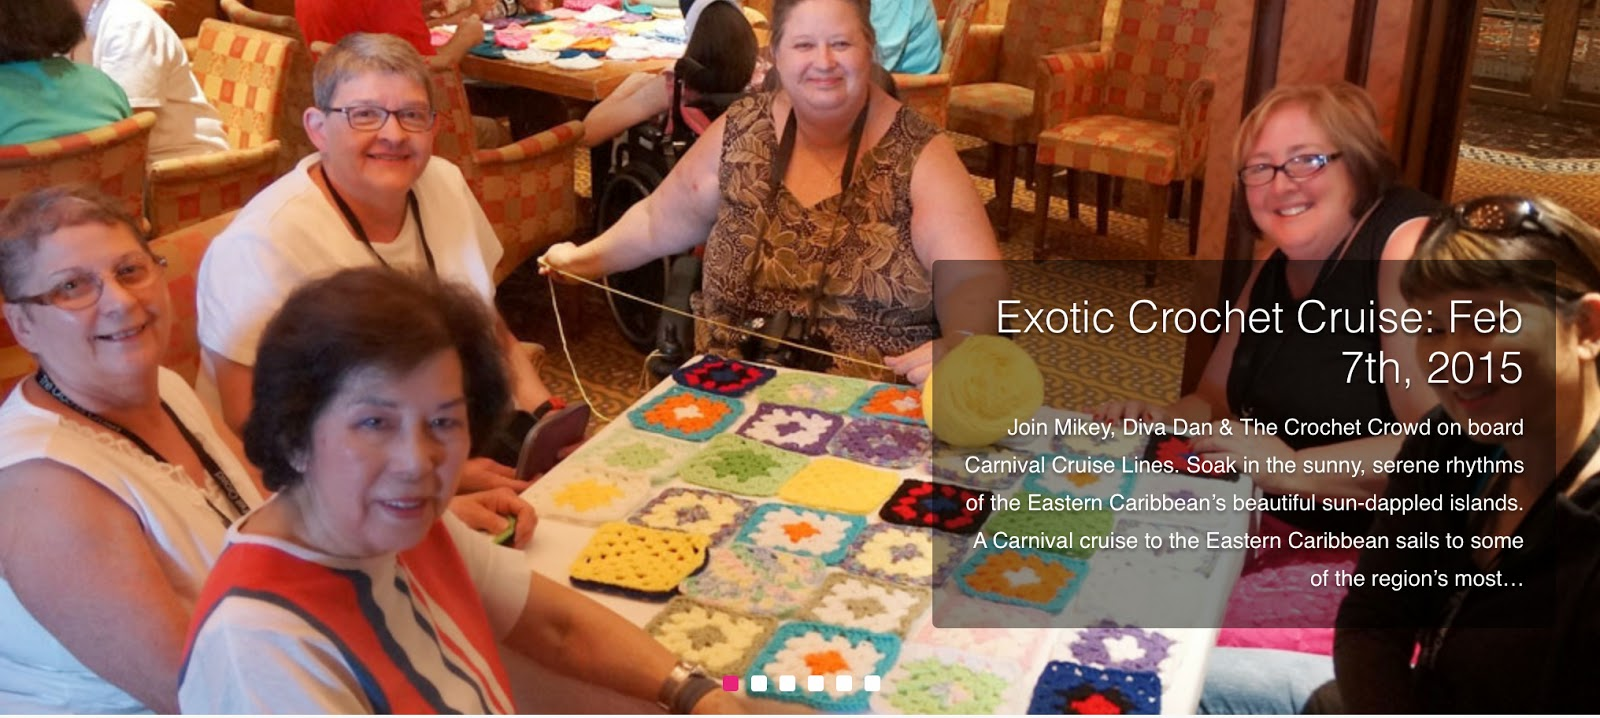 Crocheting Cruise : 29. Crochet Cruise. The Crochet Crowd proudly presents Hook?n the ...